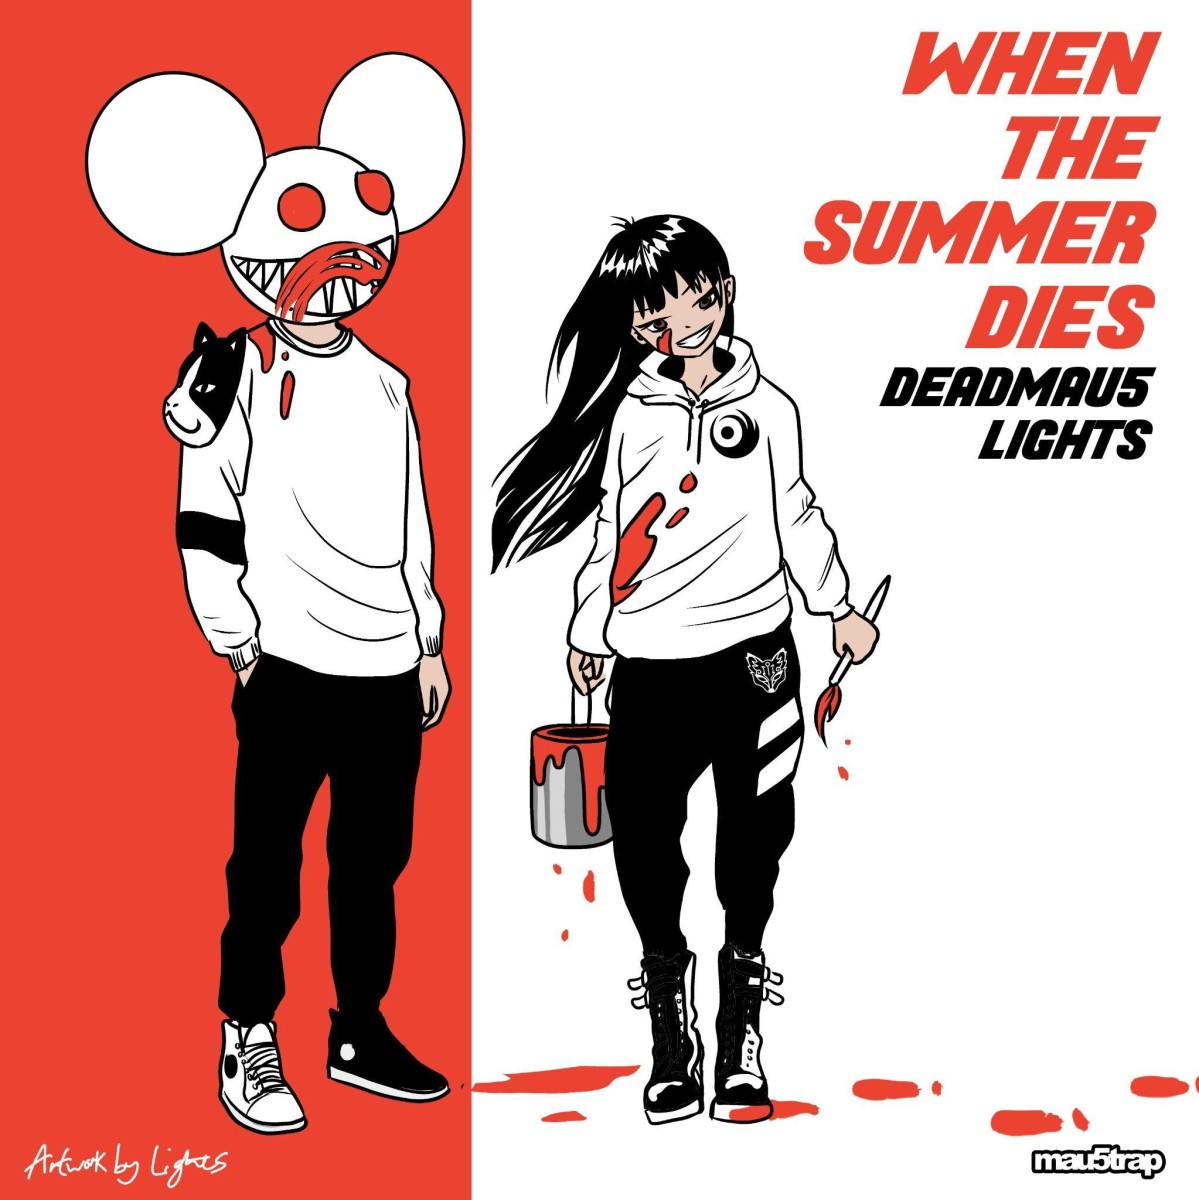 """Artwork for deadmau5 and Lights' new song """"When The Summer Dies."""""""